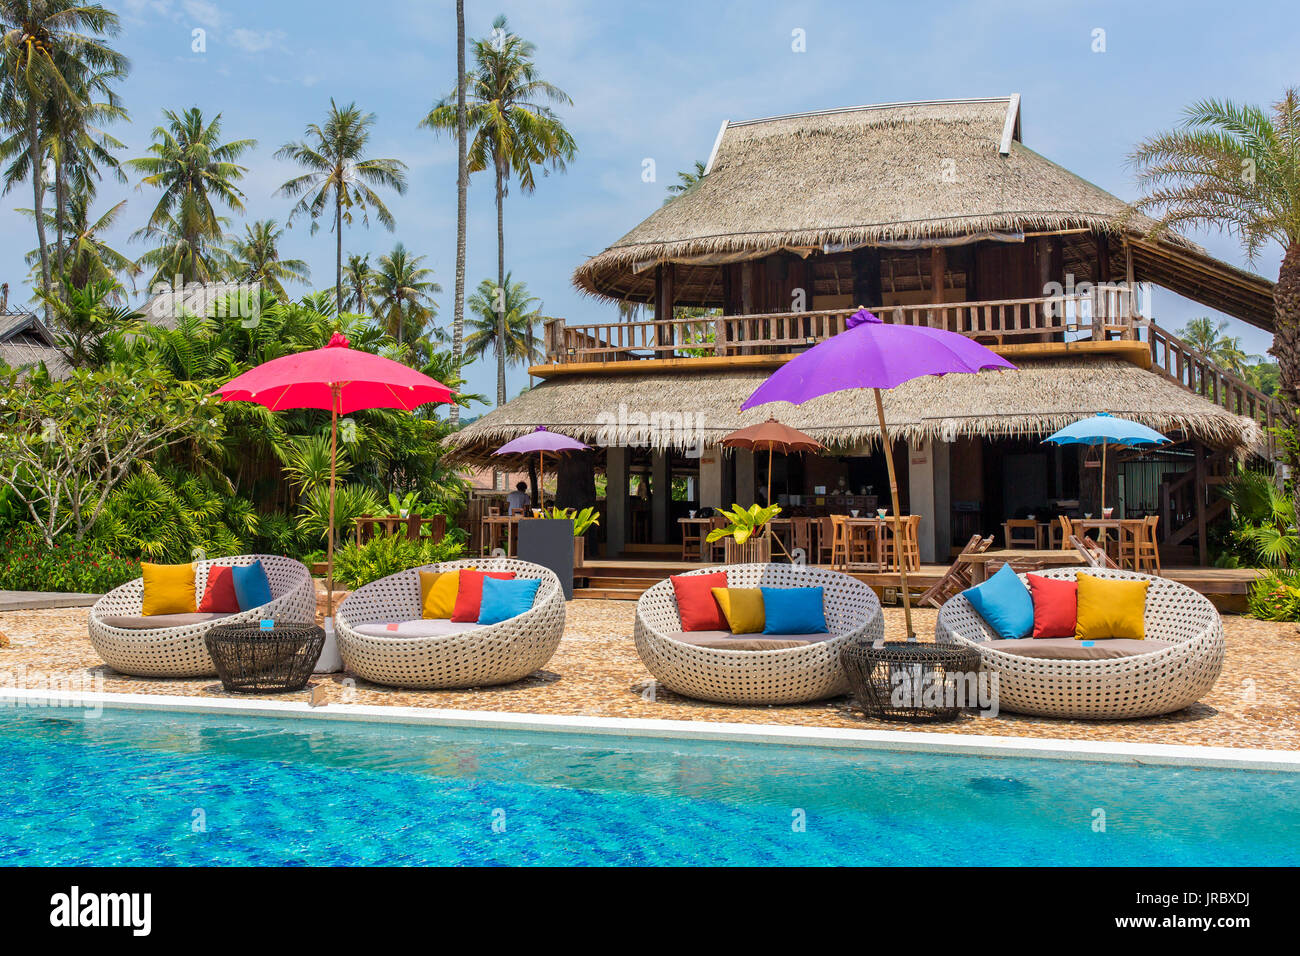 Tropical resort with a swimming pool and cafe bar on Koh Kood island, thailand Stock Photo